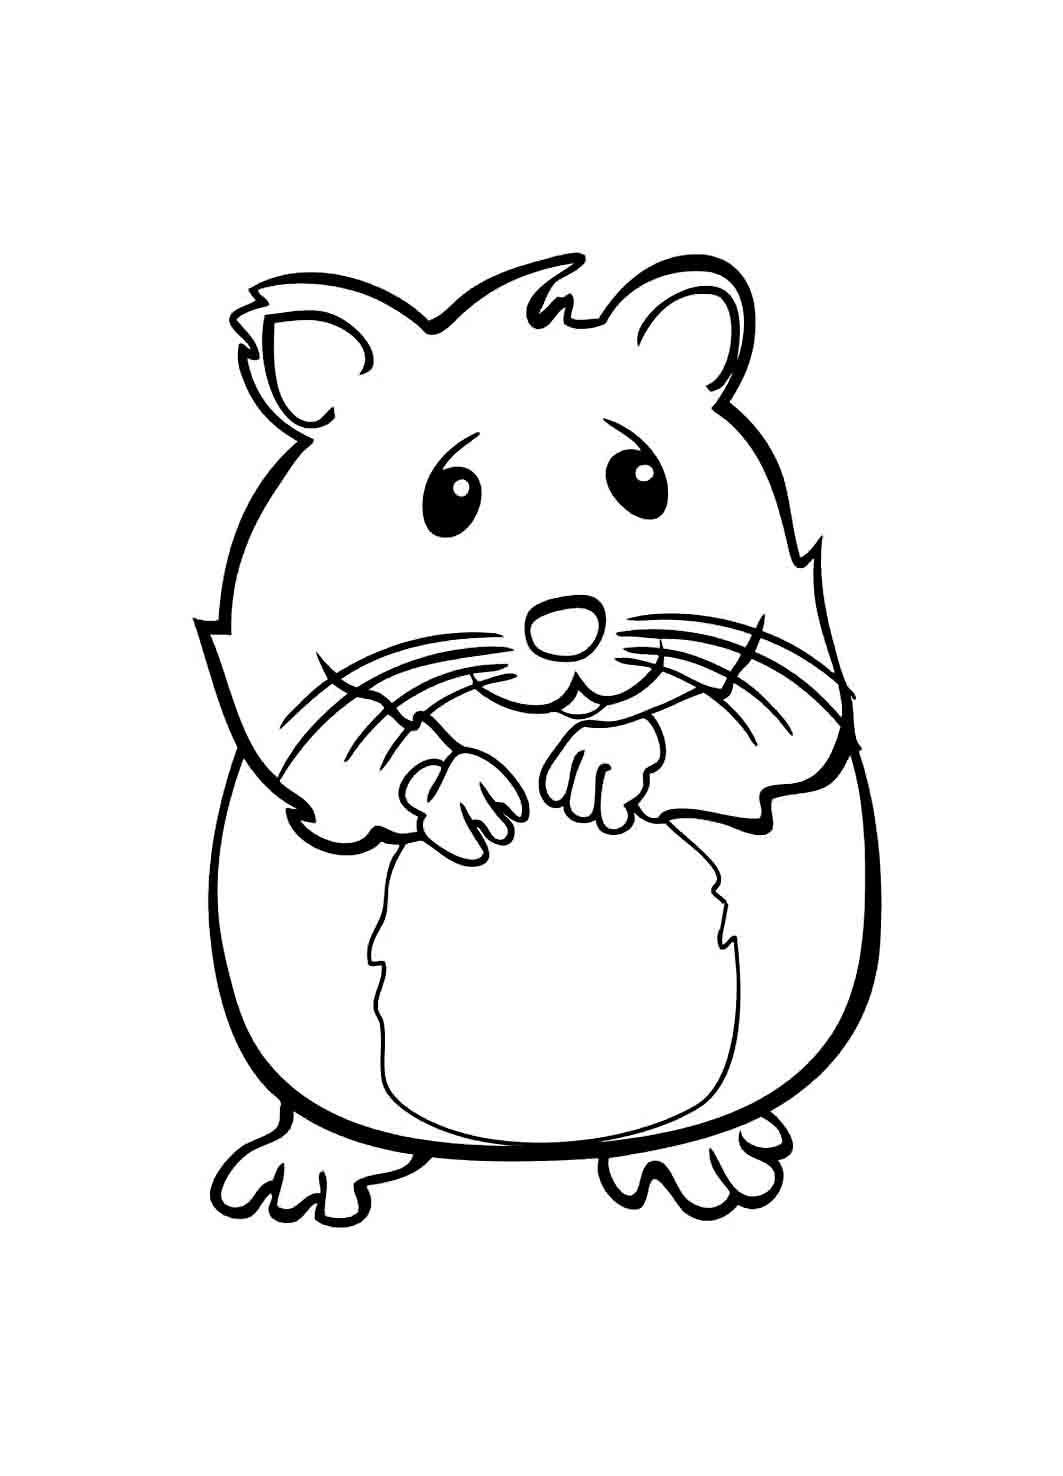 pets coloring pages for kids - photo#7